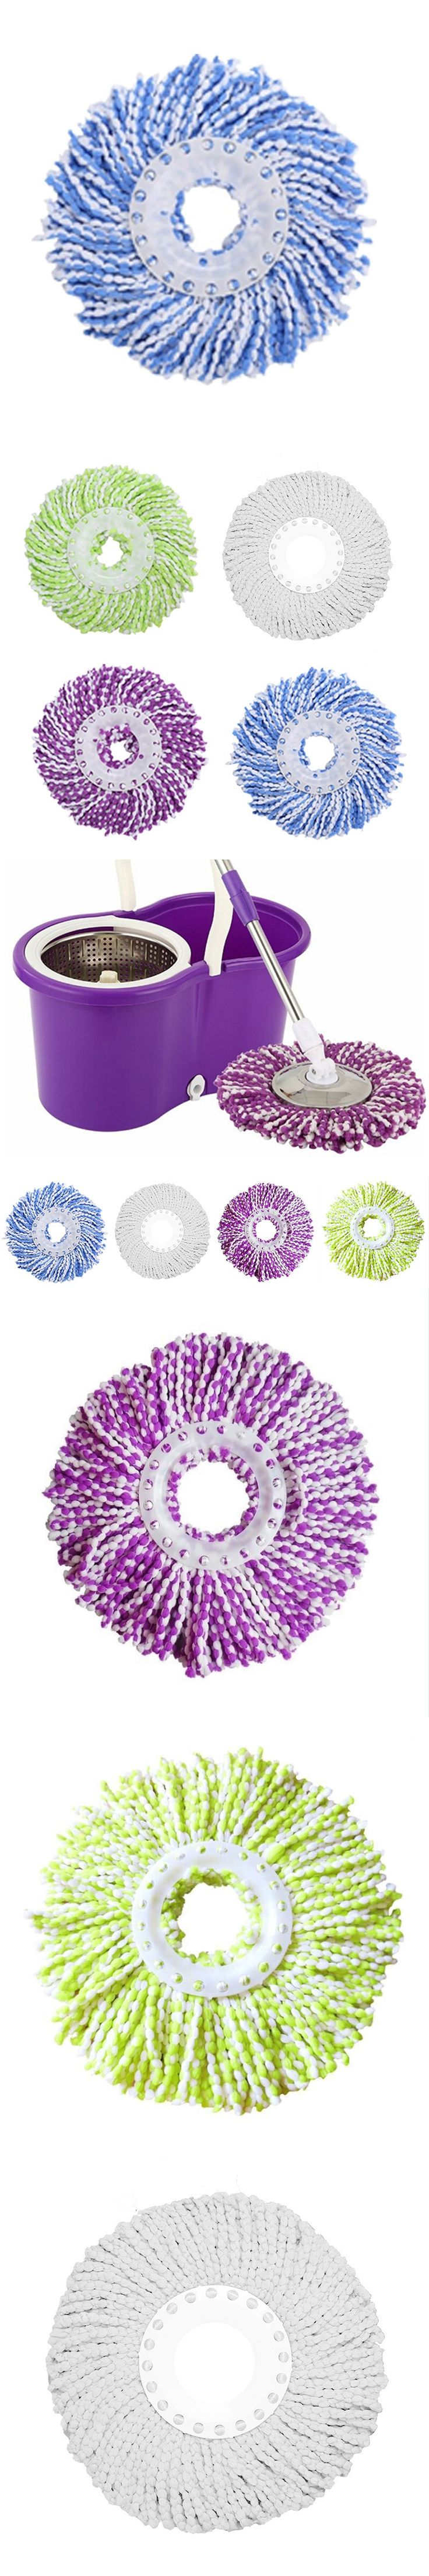 Household Magic Replacement Automatic Mop Head 360 Spin Cleaning Pad Microfiber Home Cleanasy Cleaning Floor Spinning Mop Heads